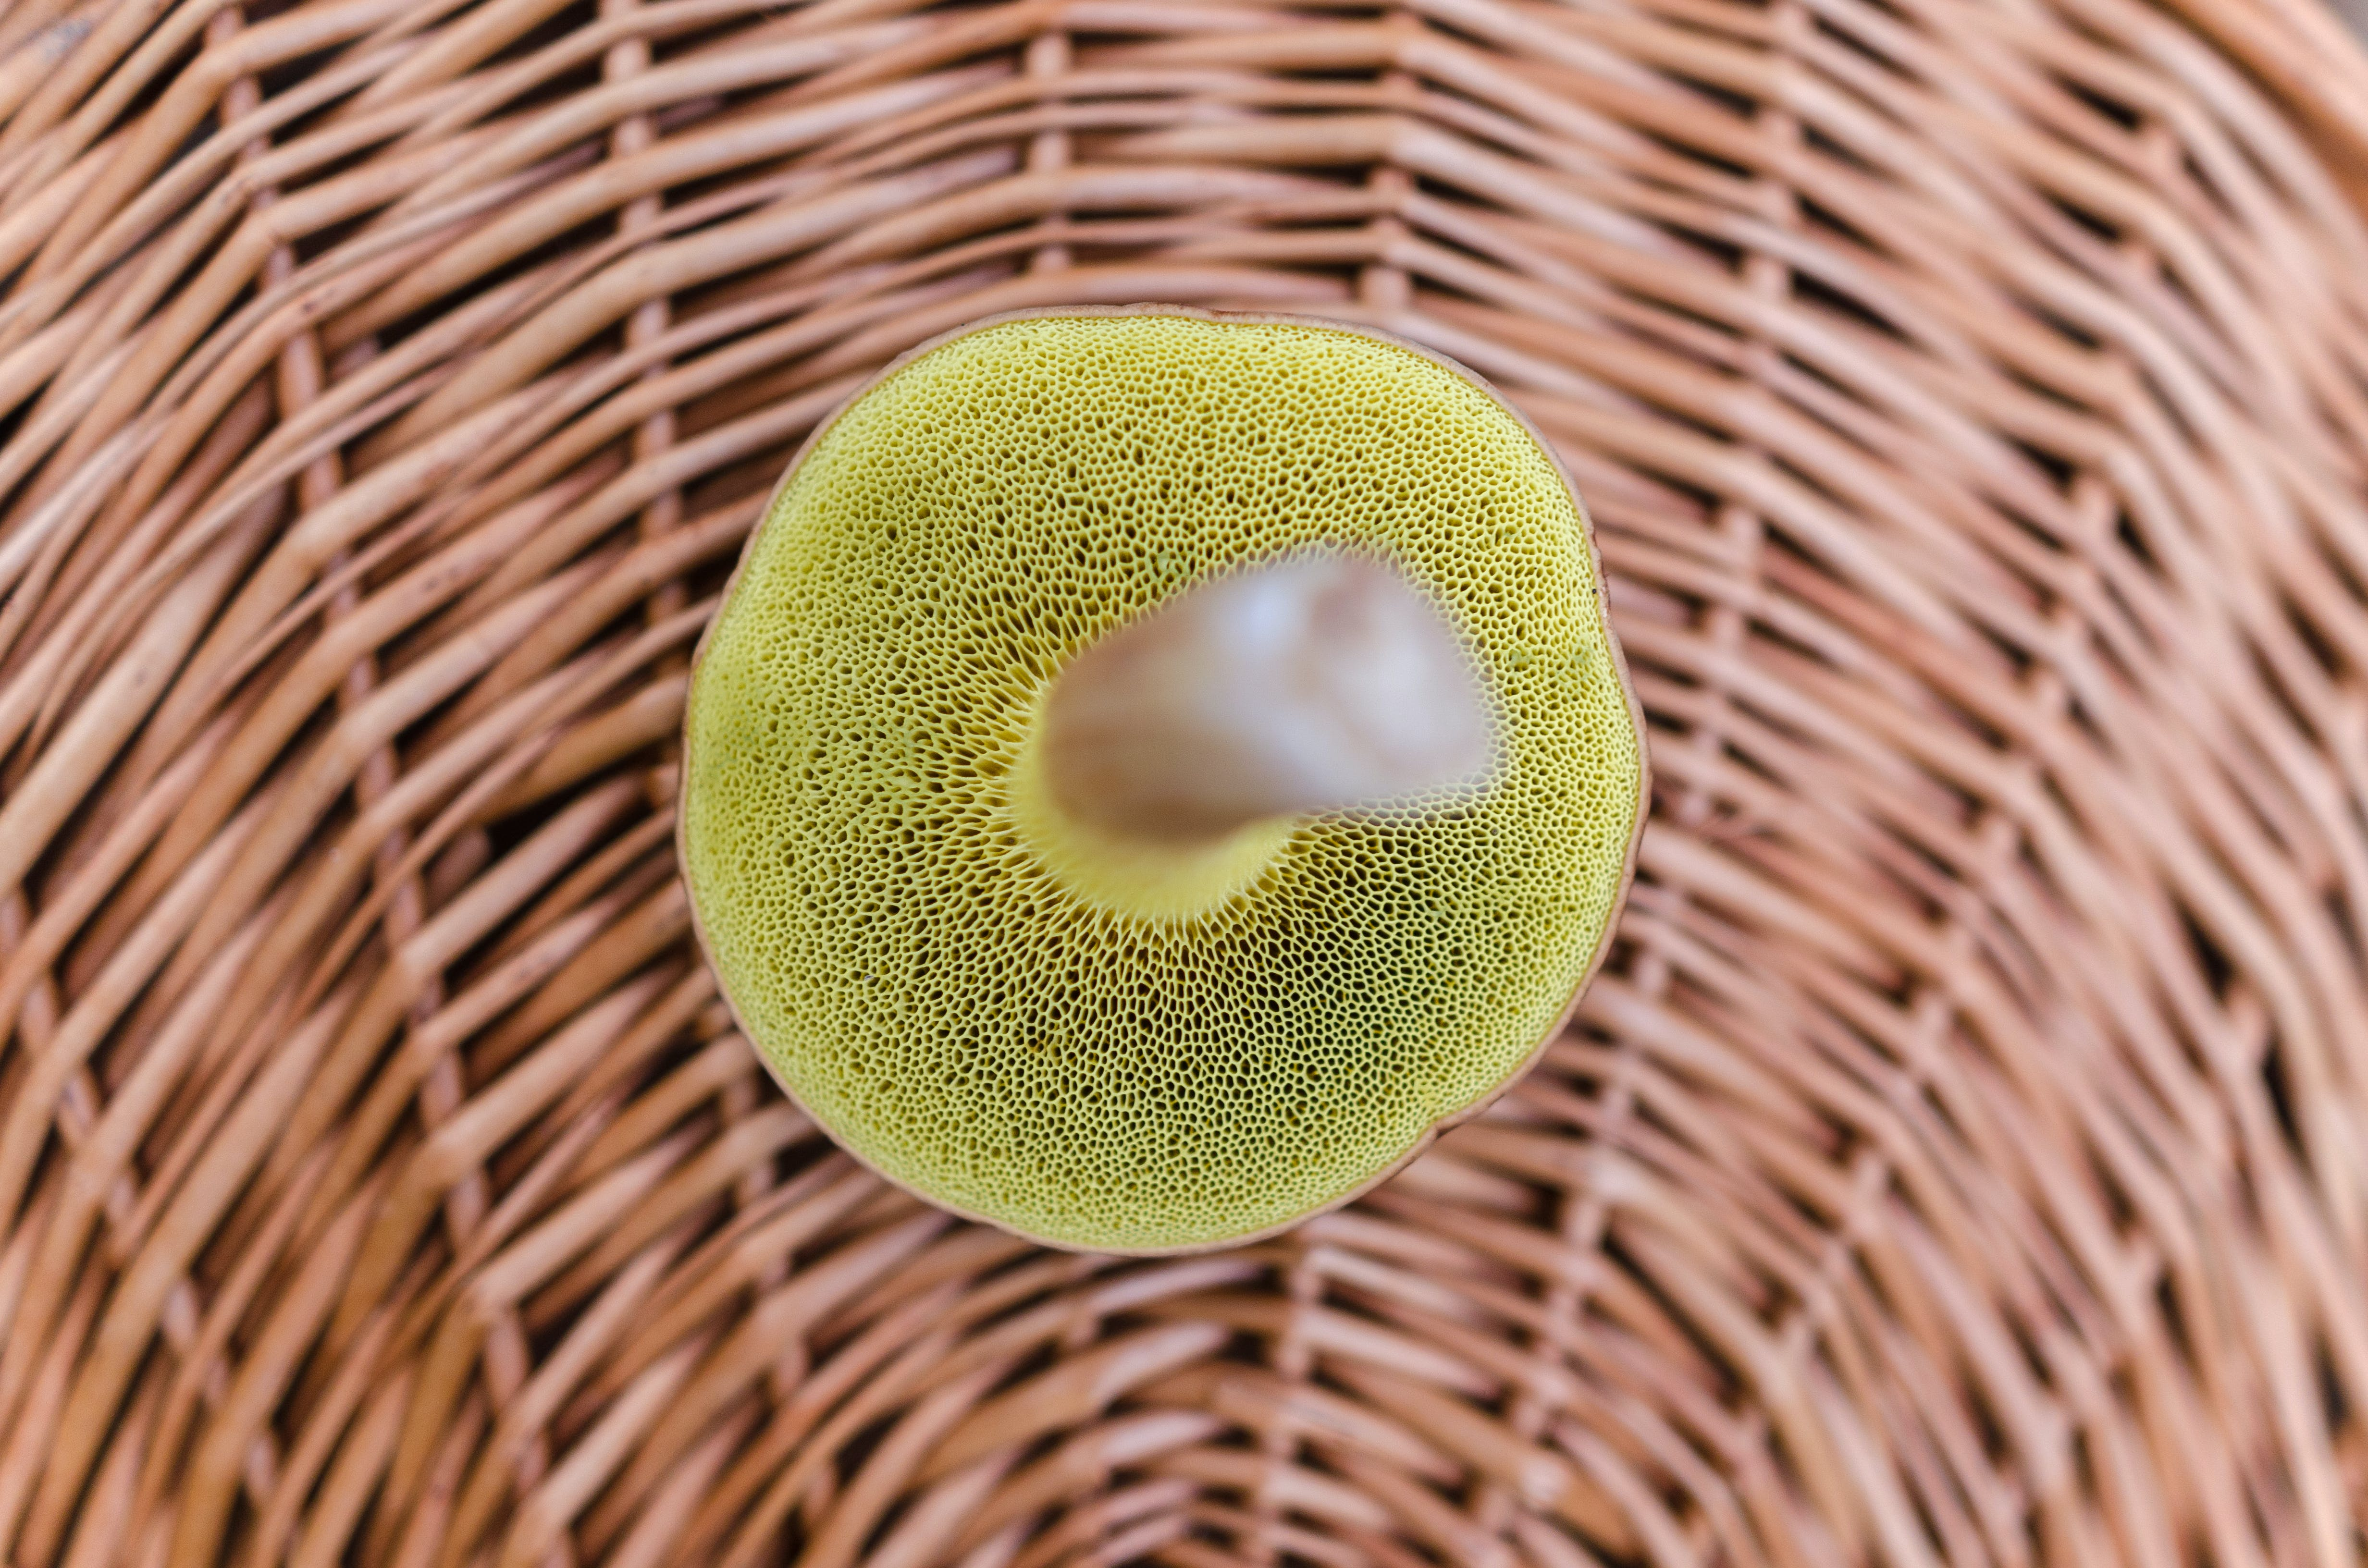 Close Up Photography of Green Sponge